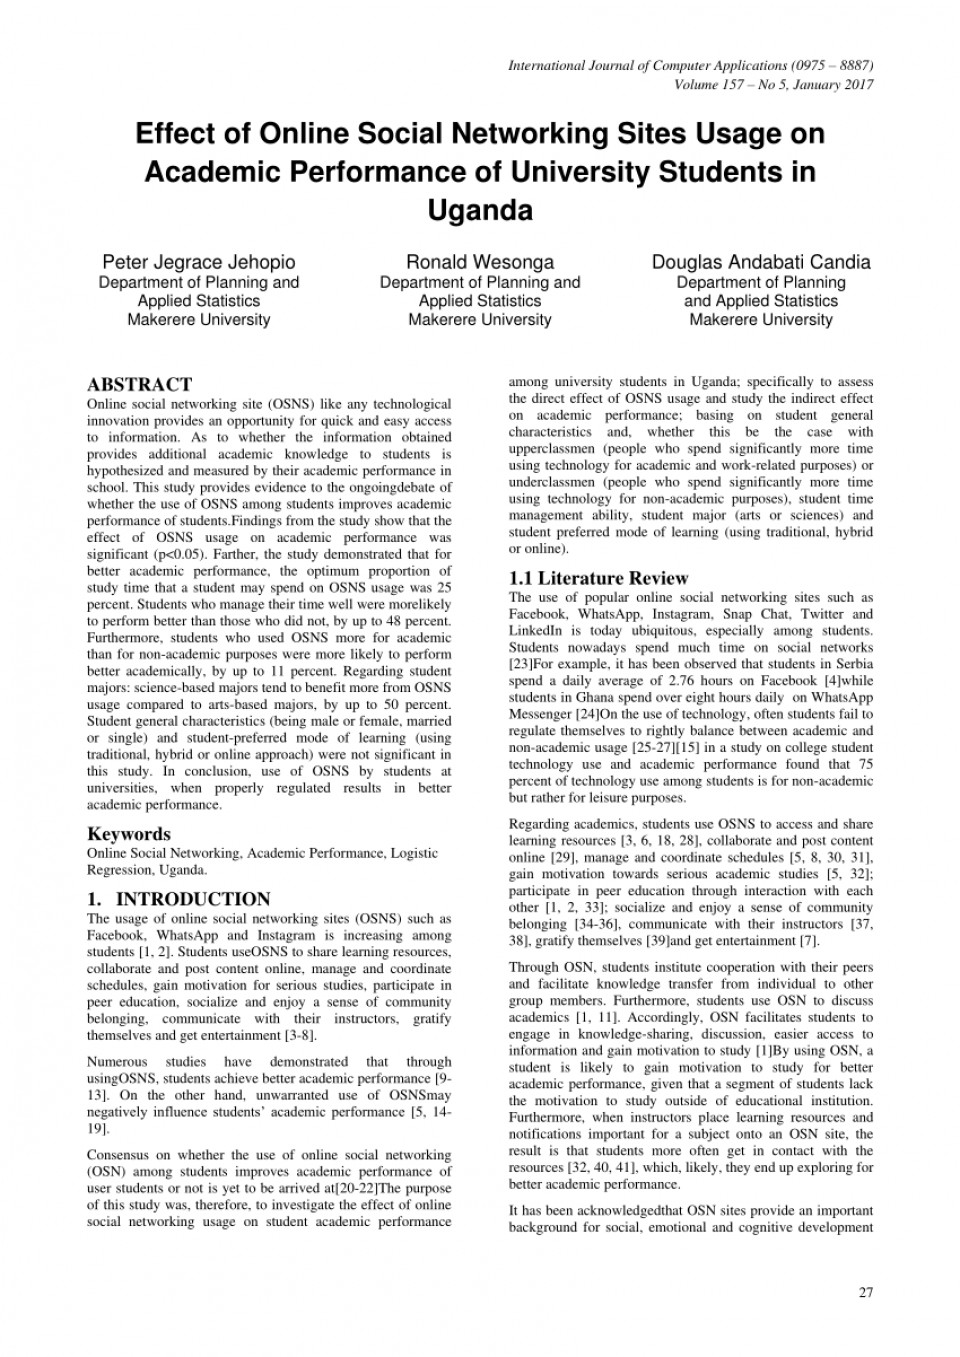 006 Conclusion For Research Paper About Social Media Awful 960